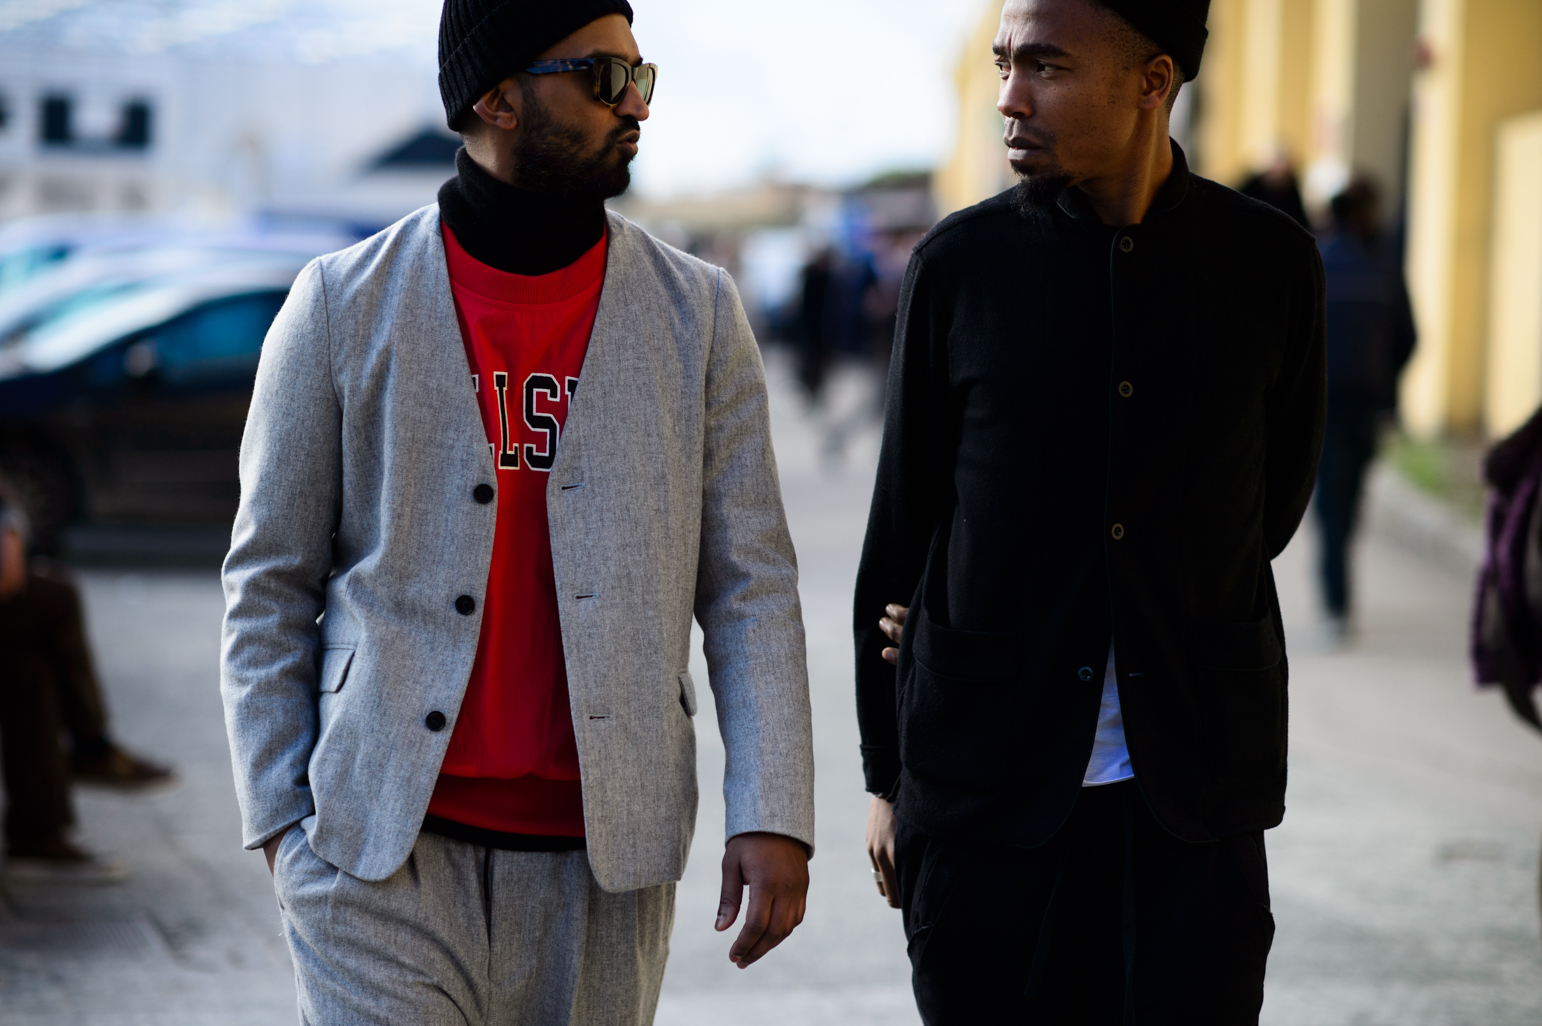 Pitti Uomo 89 Pitti People Pitti Immagine Street Style Italy Pinterest Medium People